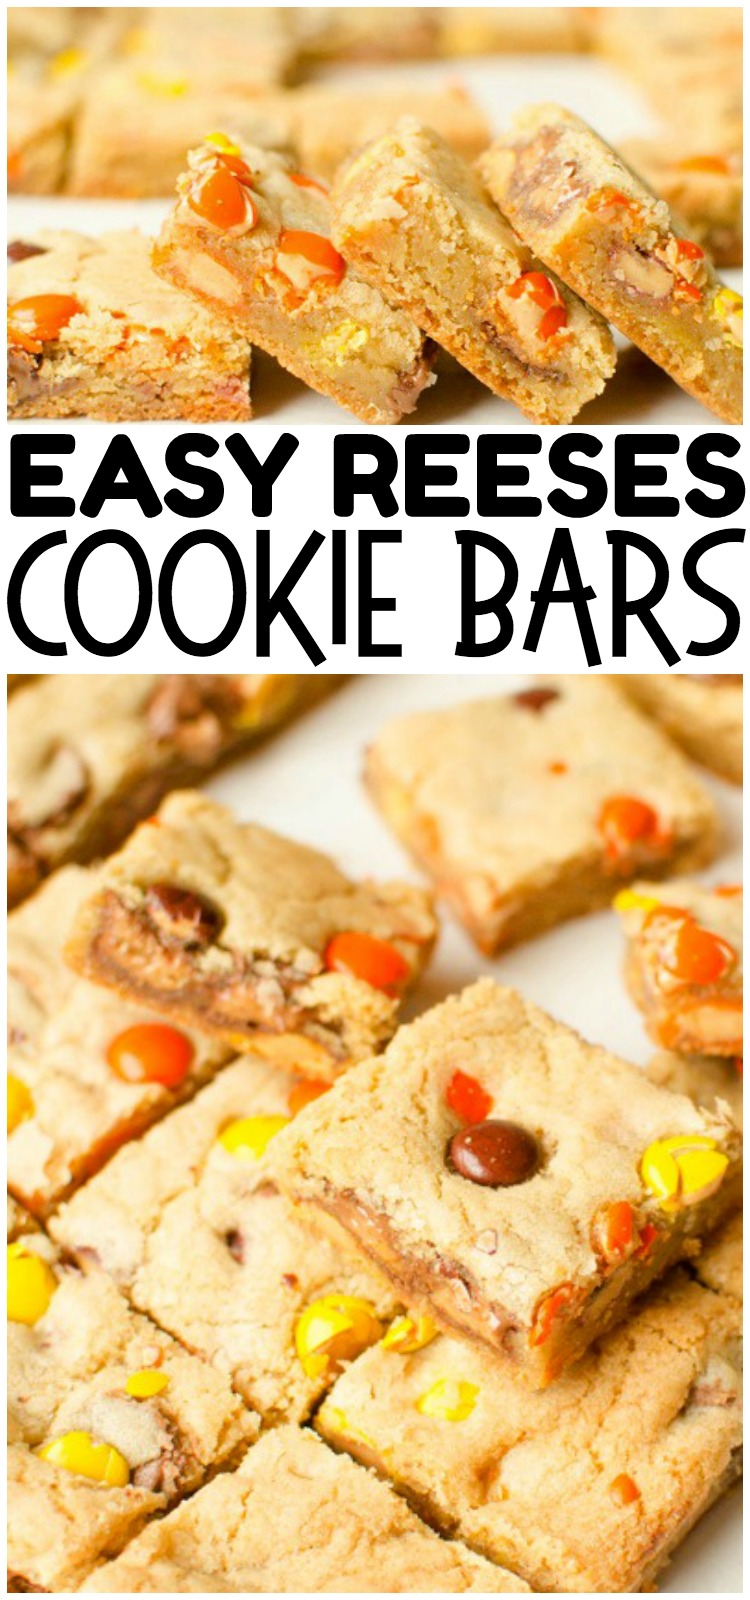 Reese's Cookie Bars are a thick, chewy & full of Reese's Pieces and Mini Reese's Cups! The rich, chewy cookie bar compliments the chocolate & peanut butter add in's perfectly. No rolling required, Cookie Bars are the way to go! #cookies #baking #reeses #chocolate #peanutbutter #cookies #recipe #dessert